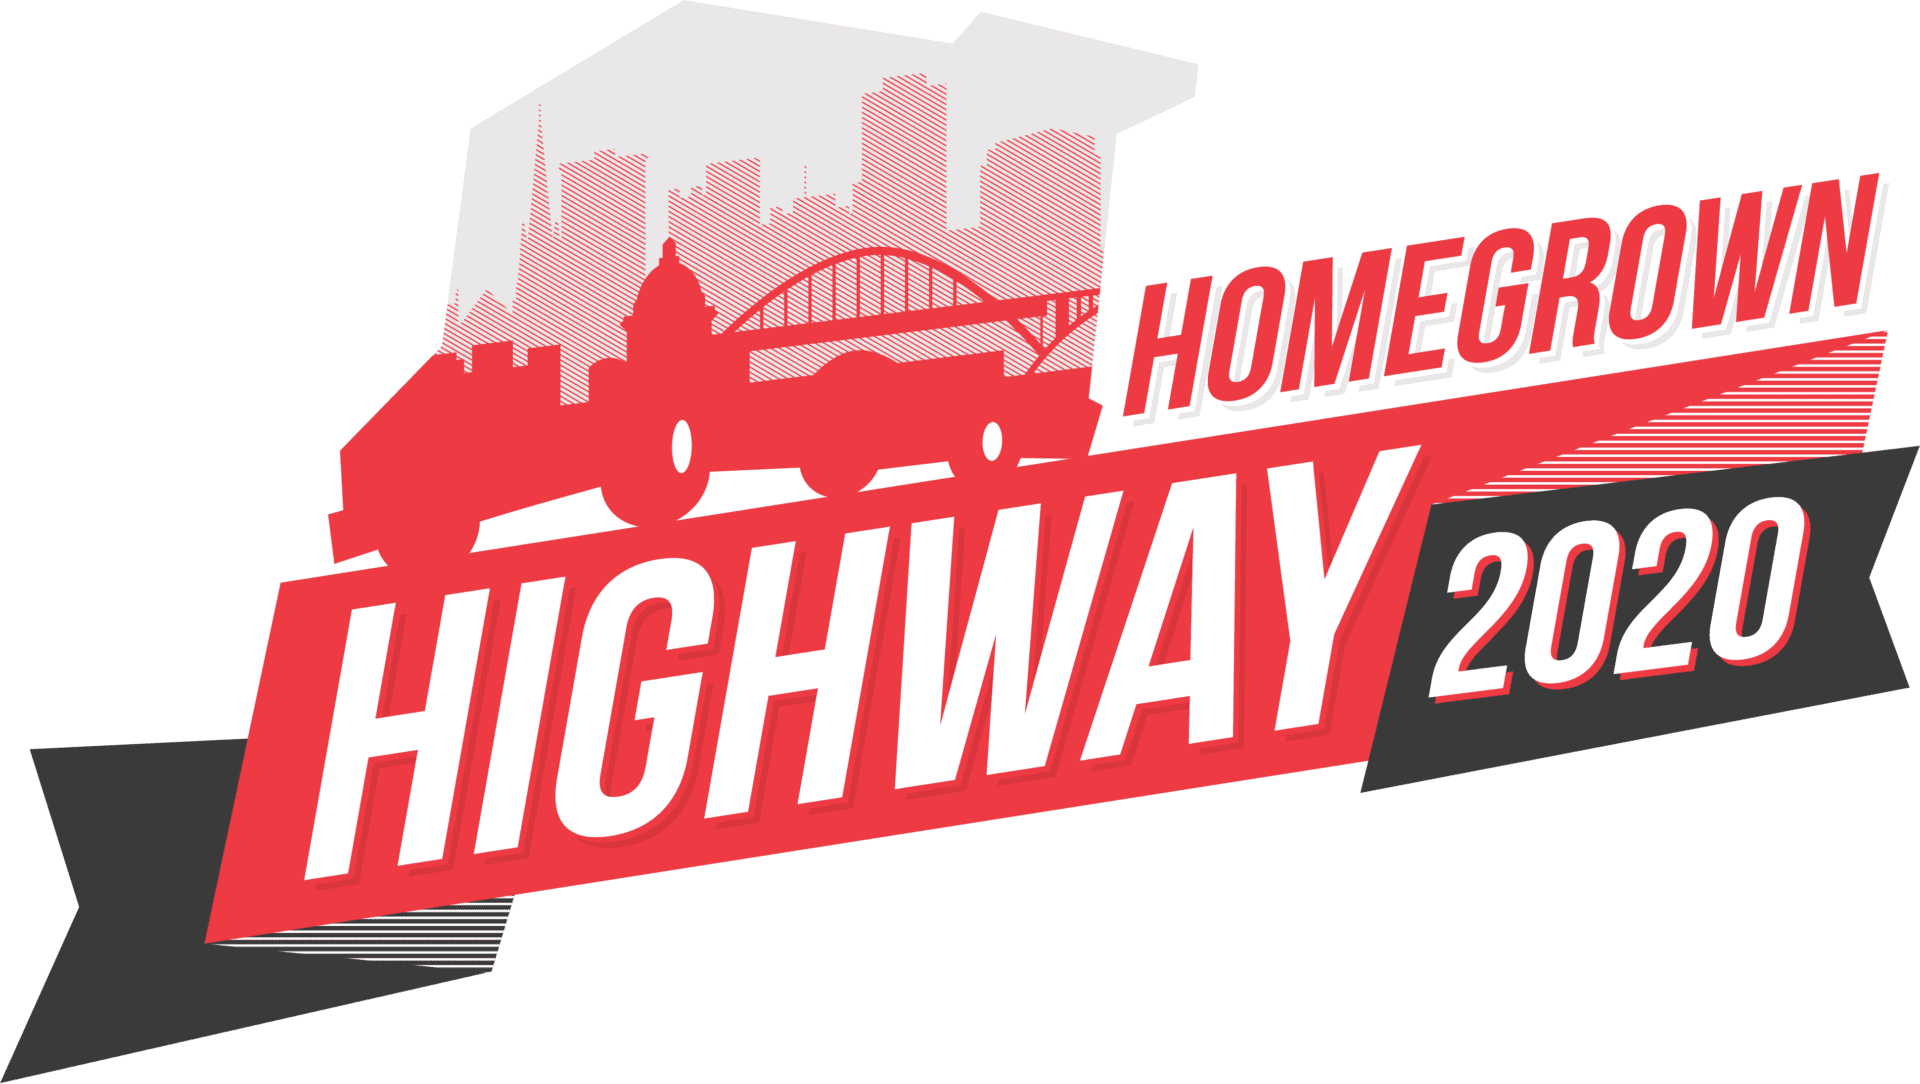 Homegrown highway 2020